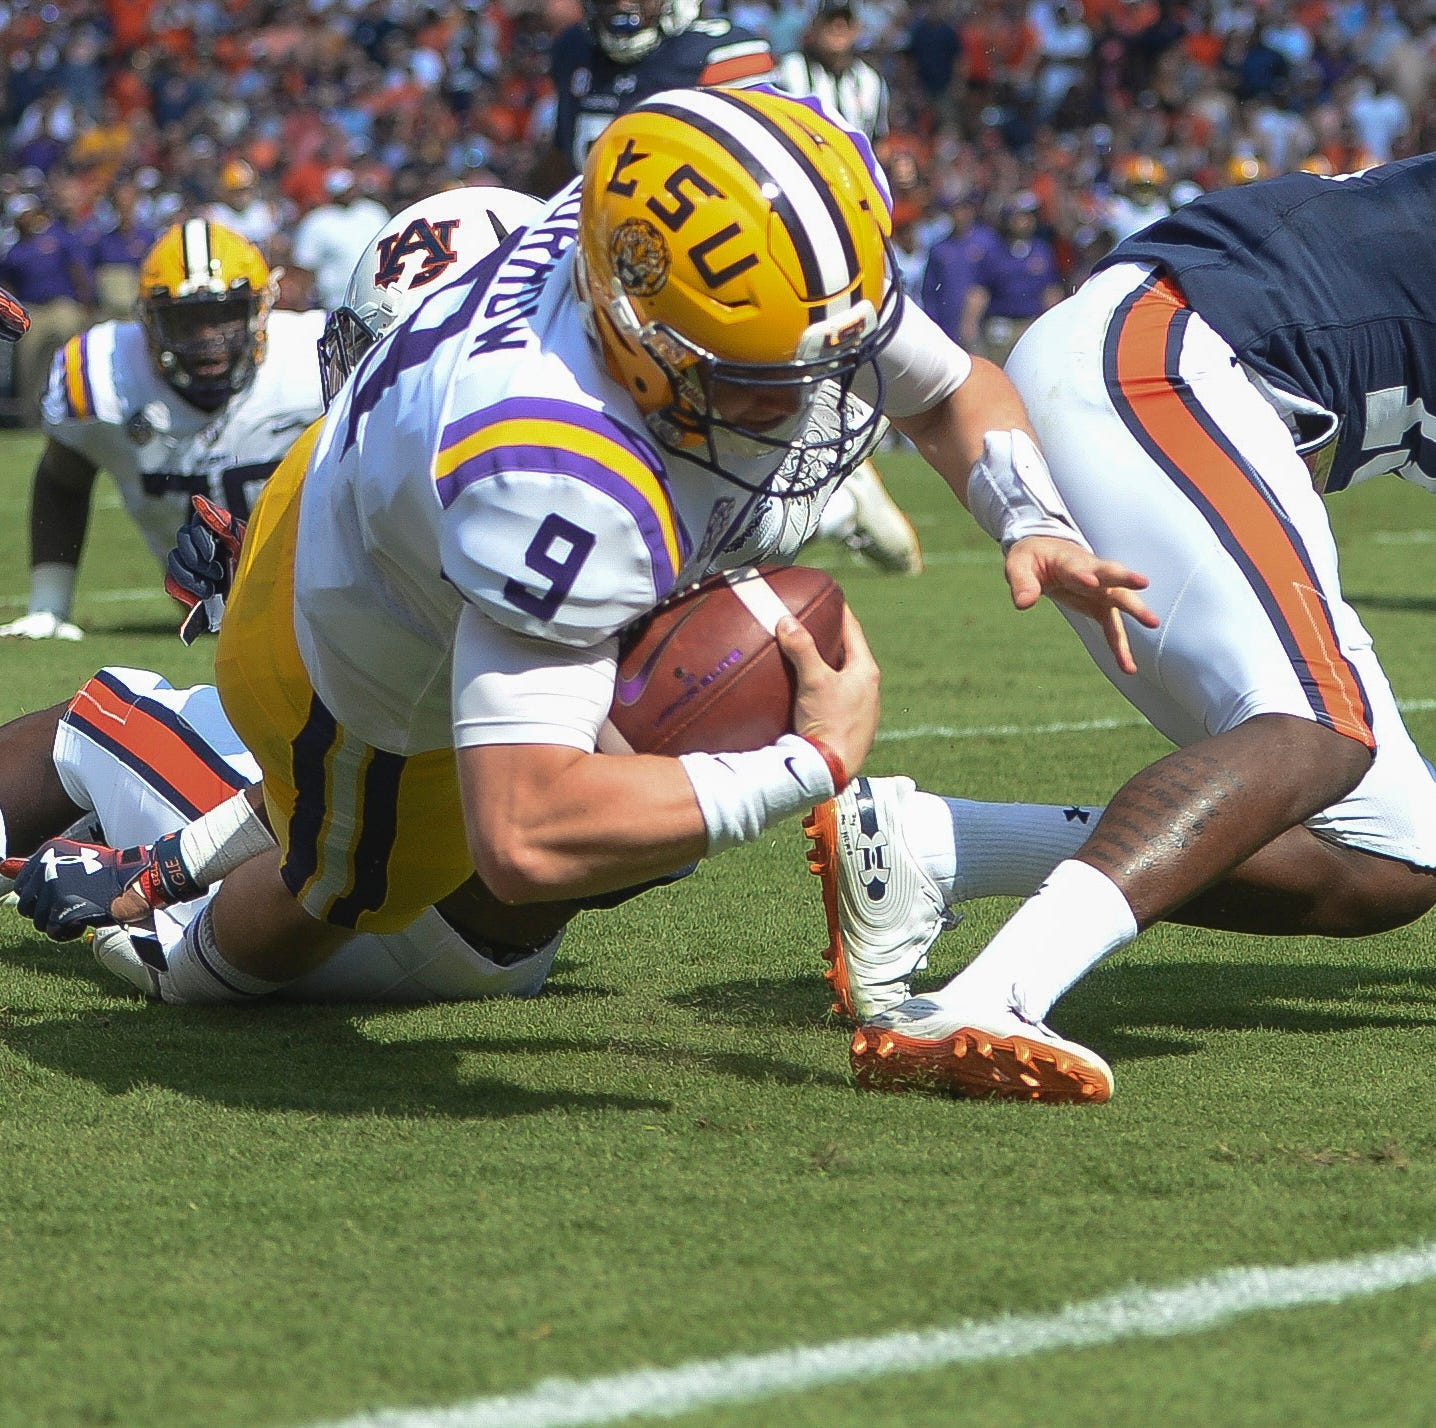 LSU vs. Auburn football: Best social media reactions to game-winning field goal